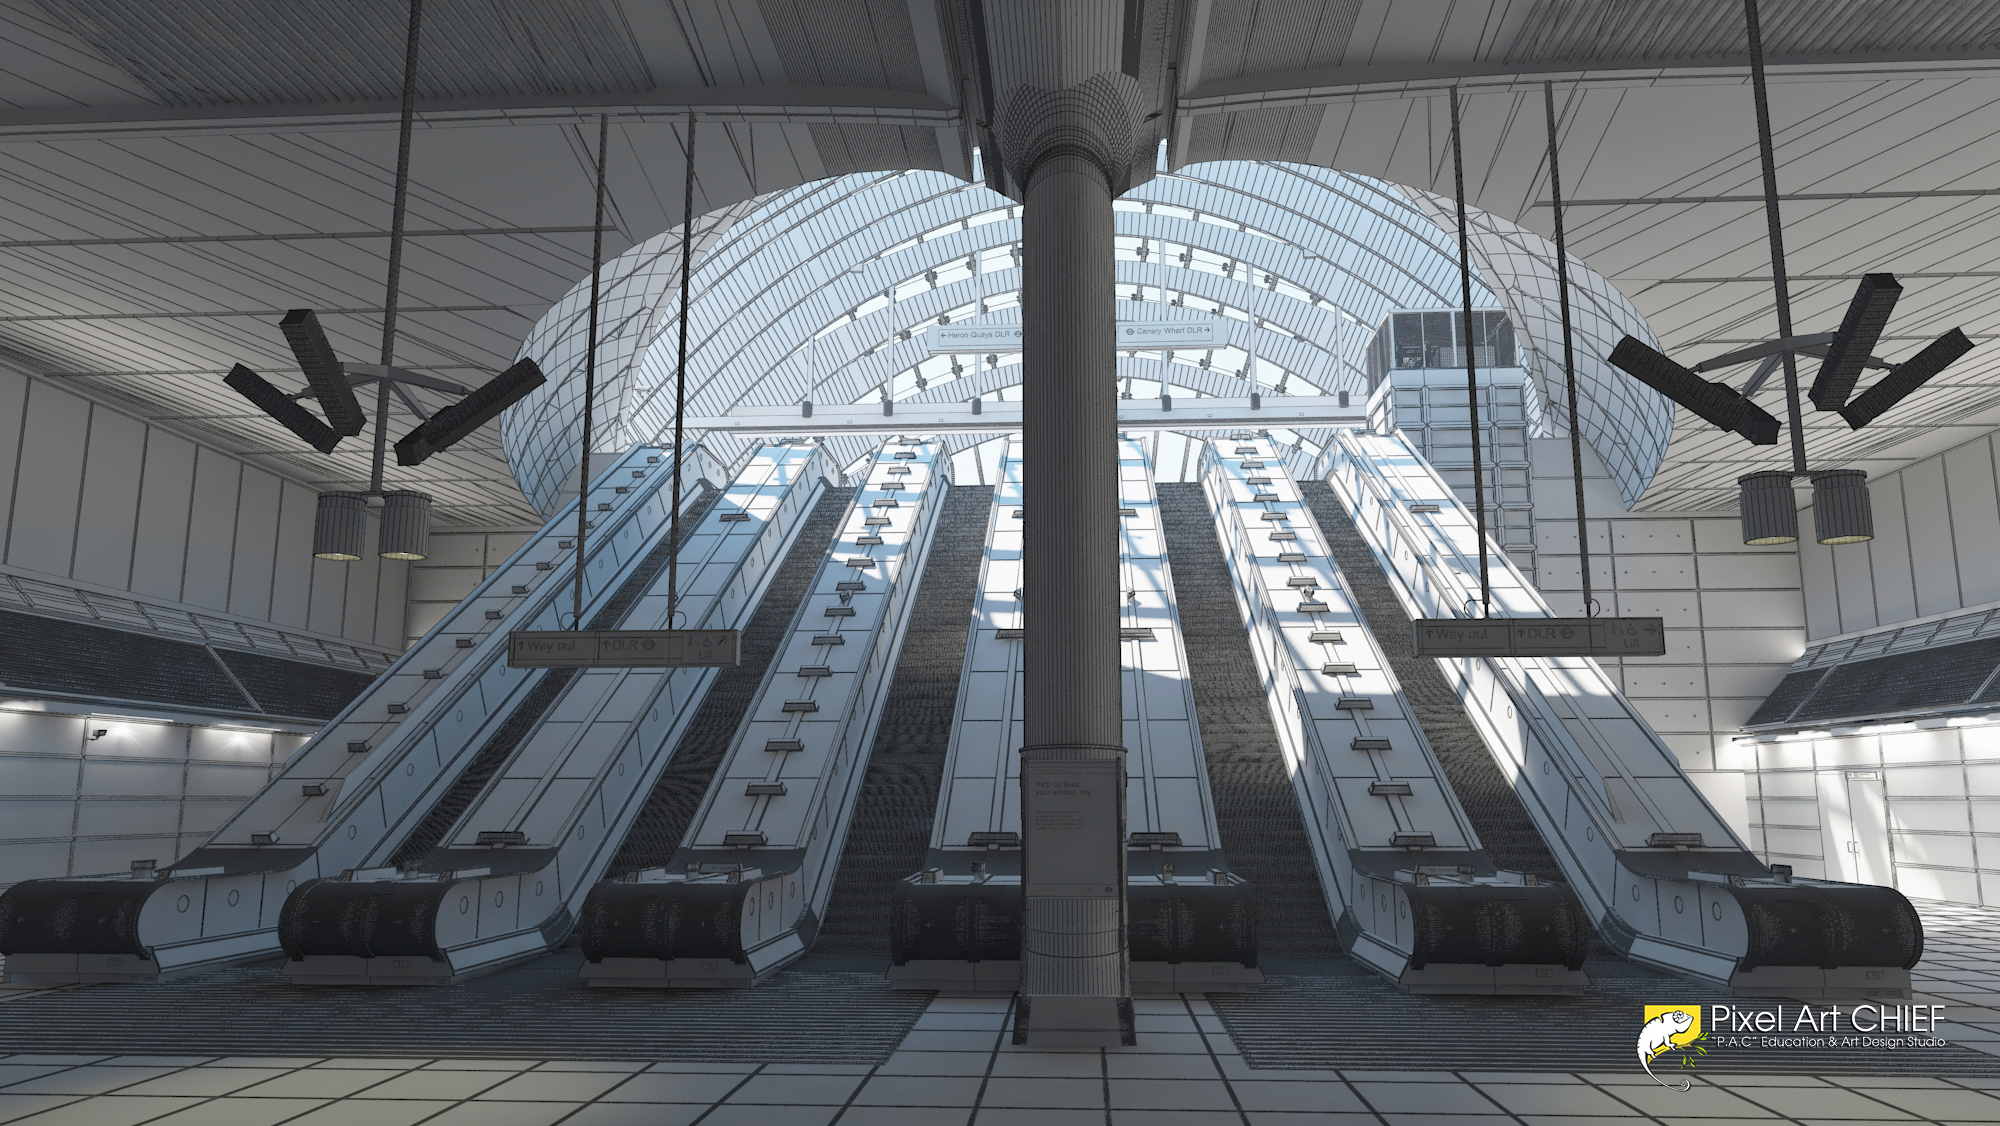 Canary Wharf Station / London